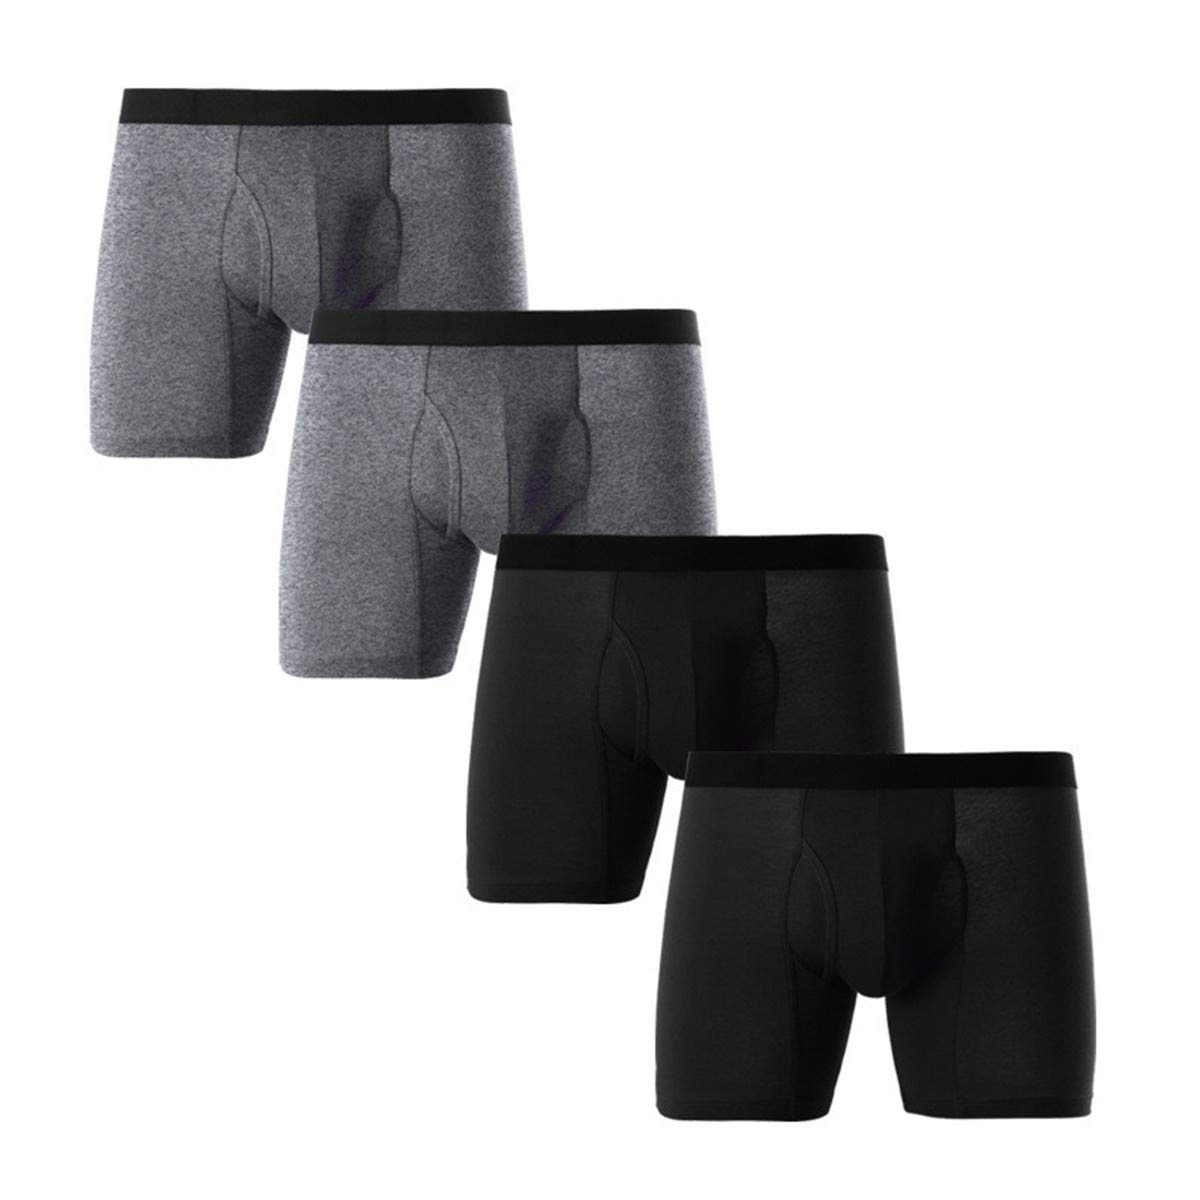 Donci Pants Men's Regular Leg Boxer Brief Multipack by Donci Pants